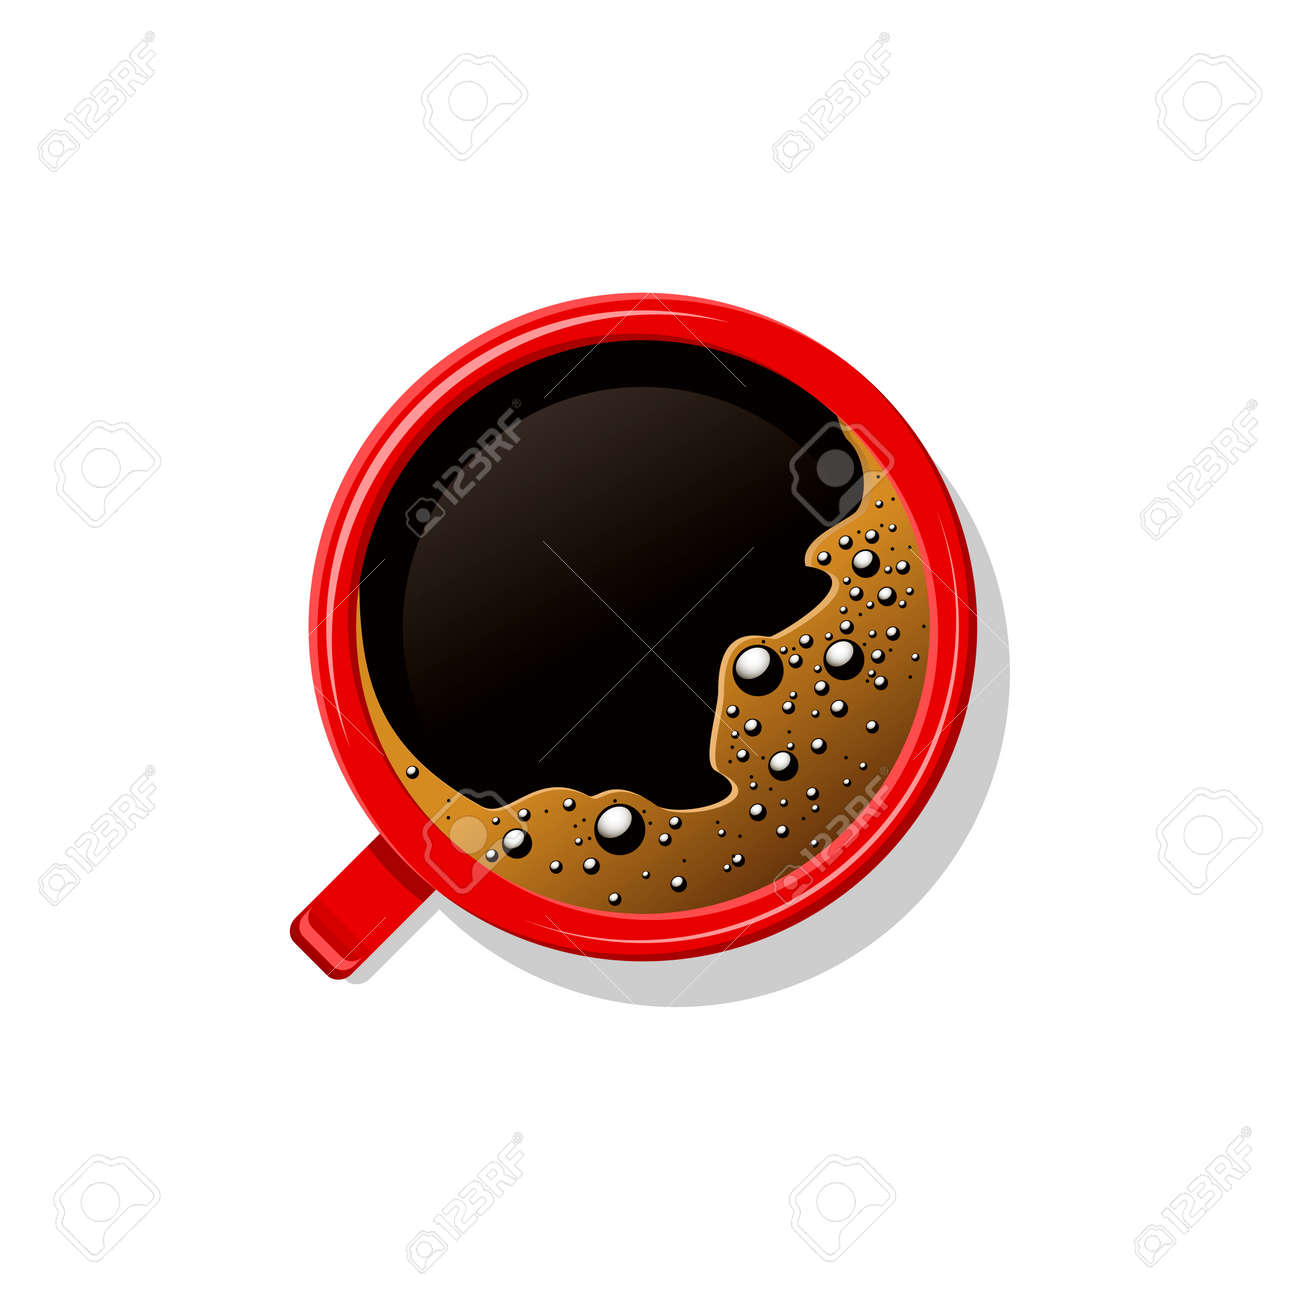 Top view black coffee in red cup isolated on white. Mug of brown coffee with foam and bubbles. Hot beverage, drink in white ceramic, porcelain cup. Vector illustration - 163564333